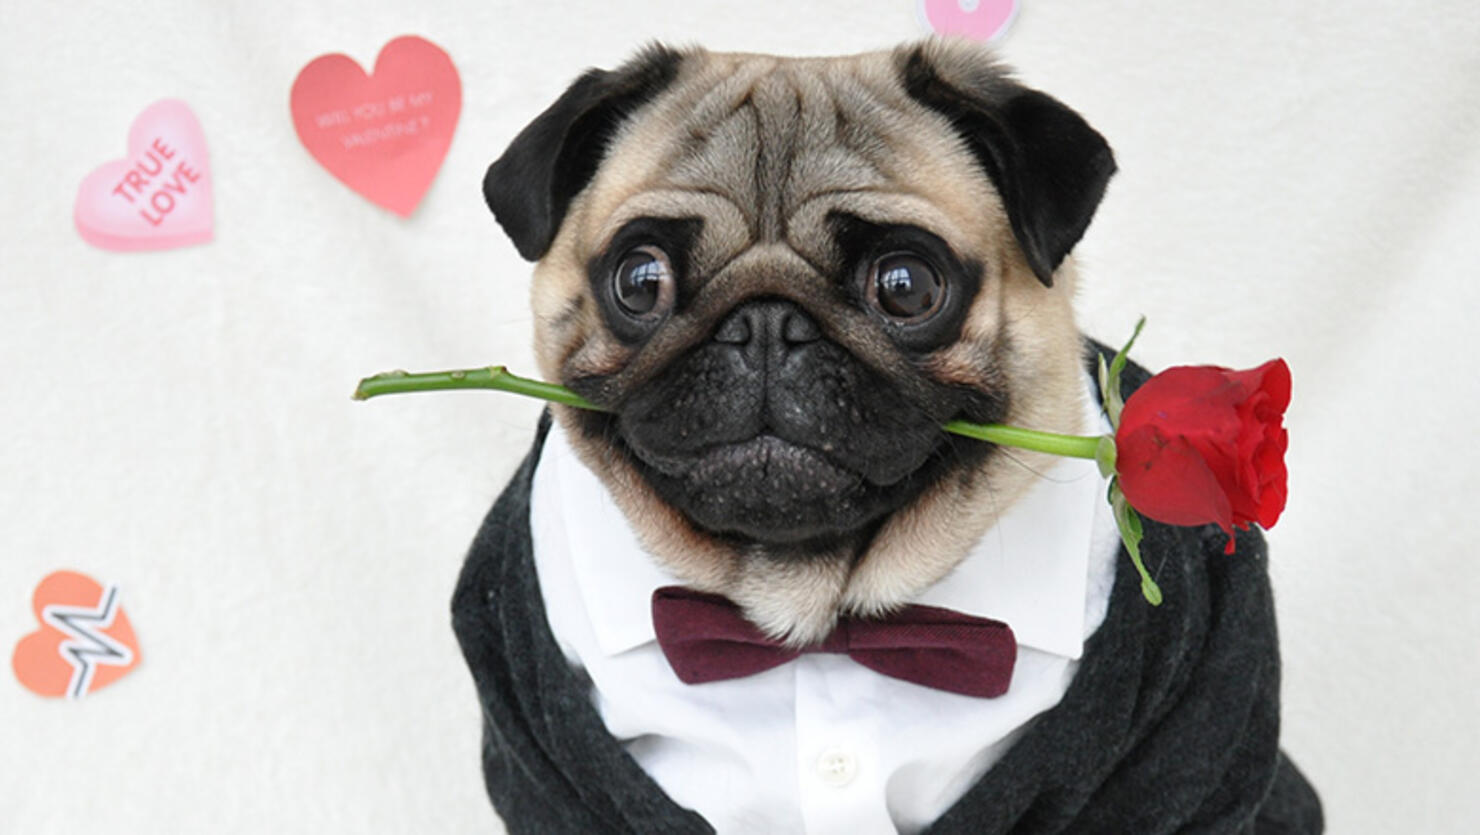 Insta-Famous Dog Nutello pictured in a Valentine's Day themed suit